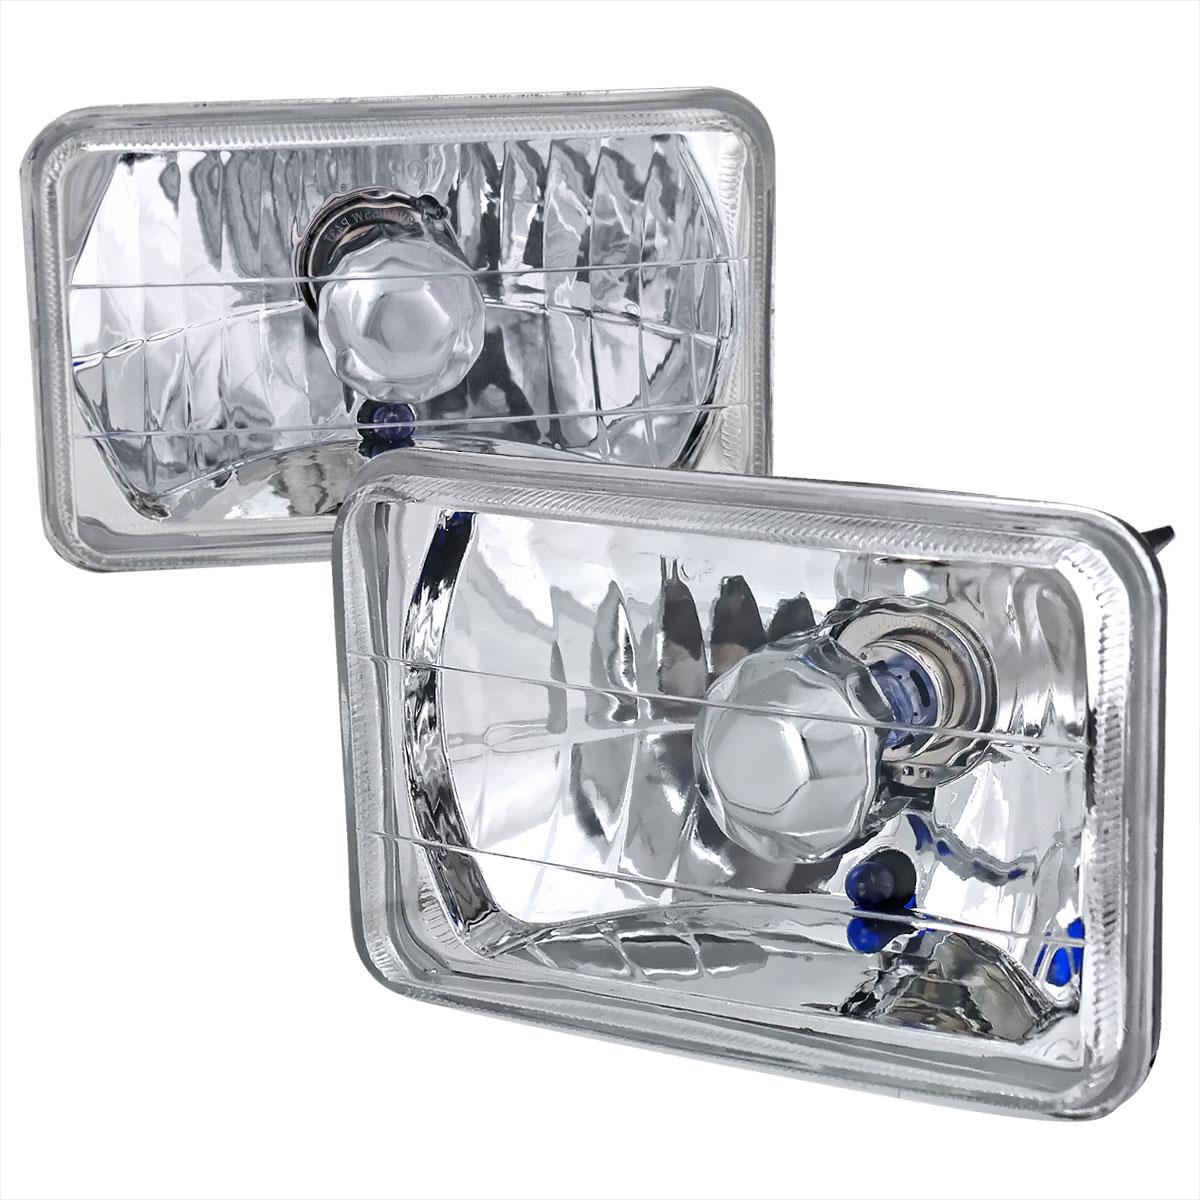 Spec-D Tuning LH-4X6 - Spec-D 4x6 Headlights - Crystal